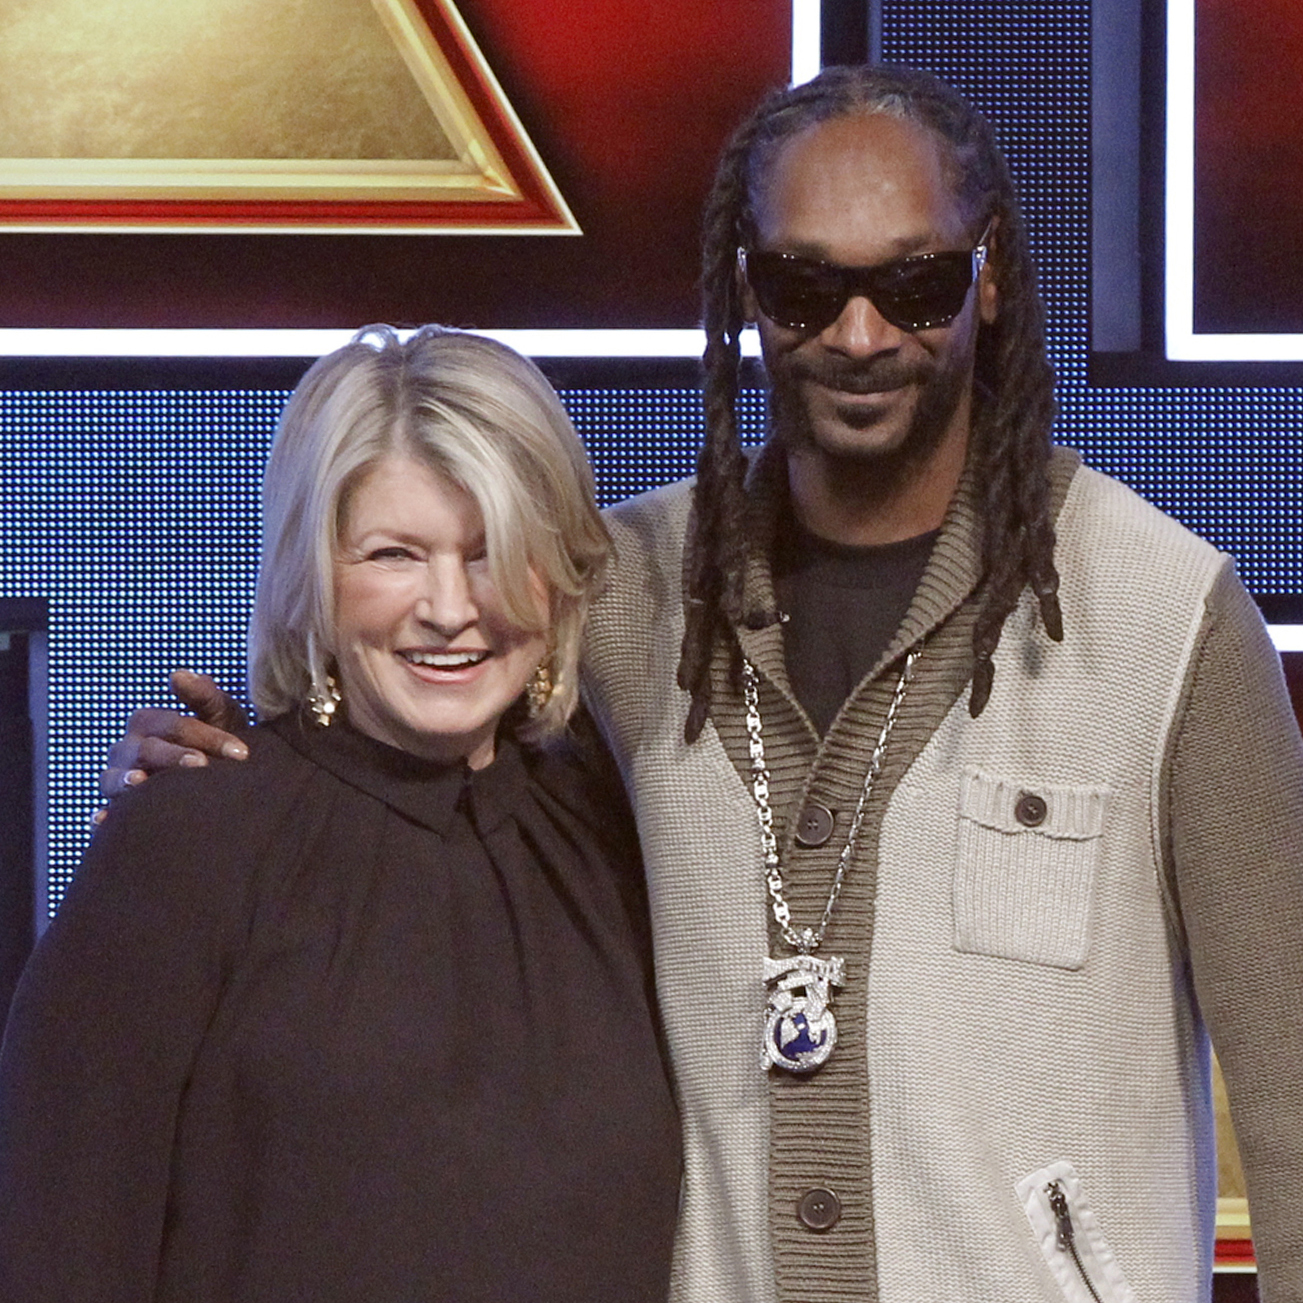 martha-stewart-snoop-dogg-vh1-tv-show-fwx